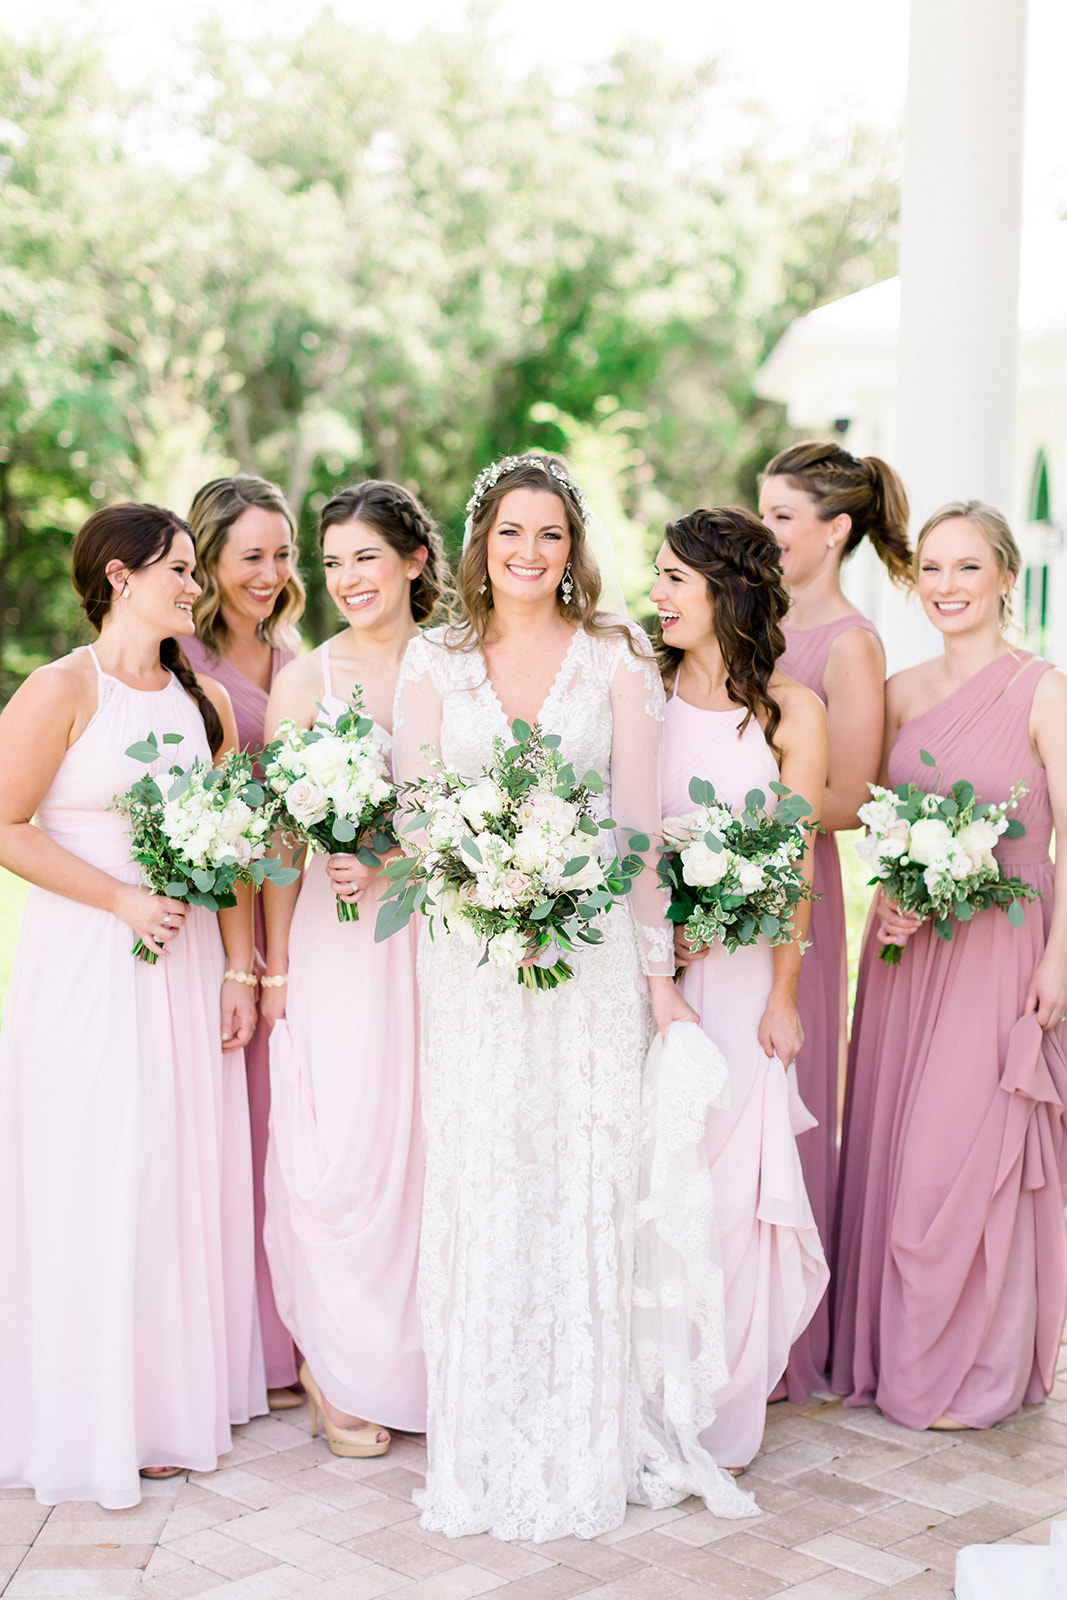 Florida Boho Inspired Bride and Bridesmaids Portrait, Wearing Mix and Match Blush, Pink Long Dresses, Holding White Floral Bouquets with Greenery | Tampa Bay Wedding Photographers Shauna and Jordon Photography | Tampa Wedding Hair and Makeup Artist Femme Akoi Beauty Studio